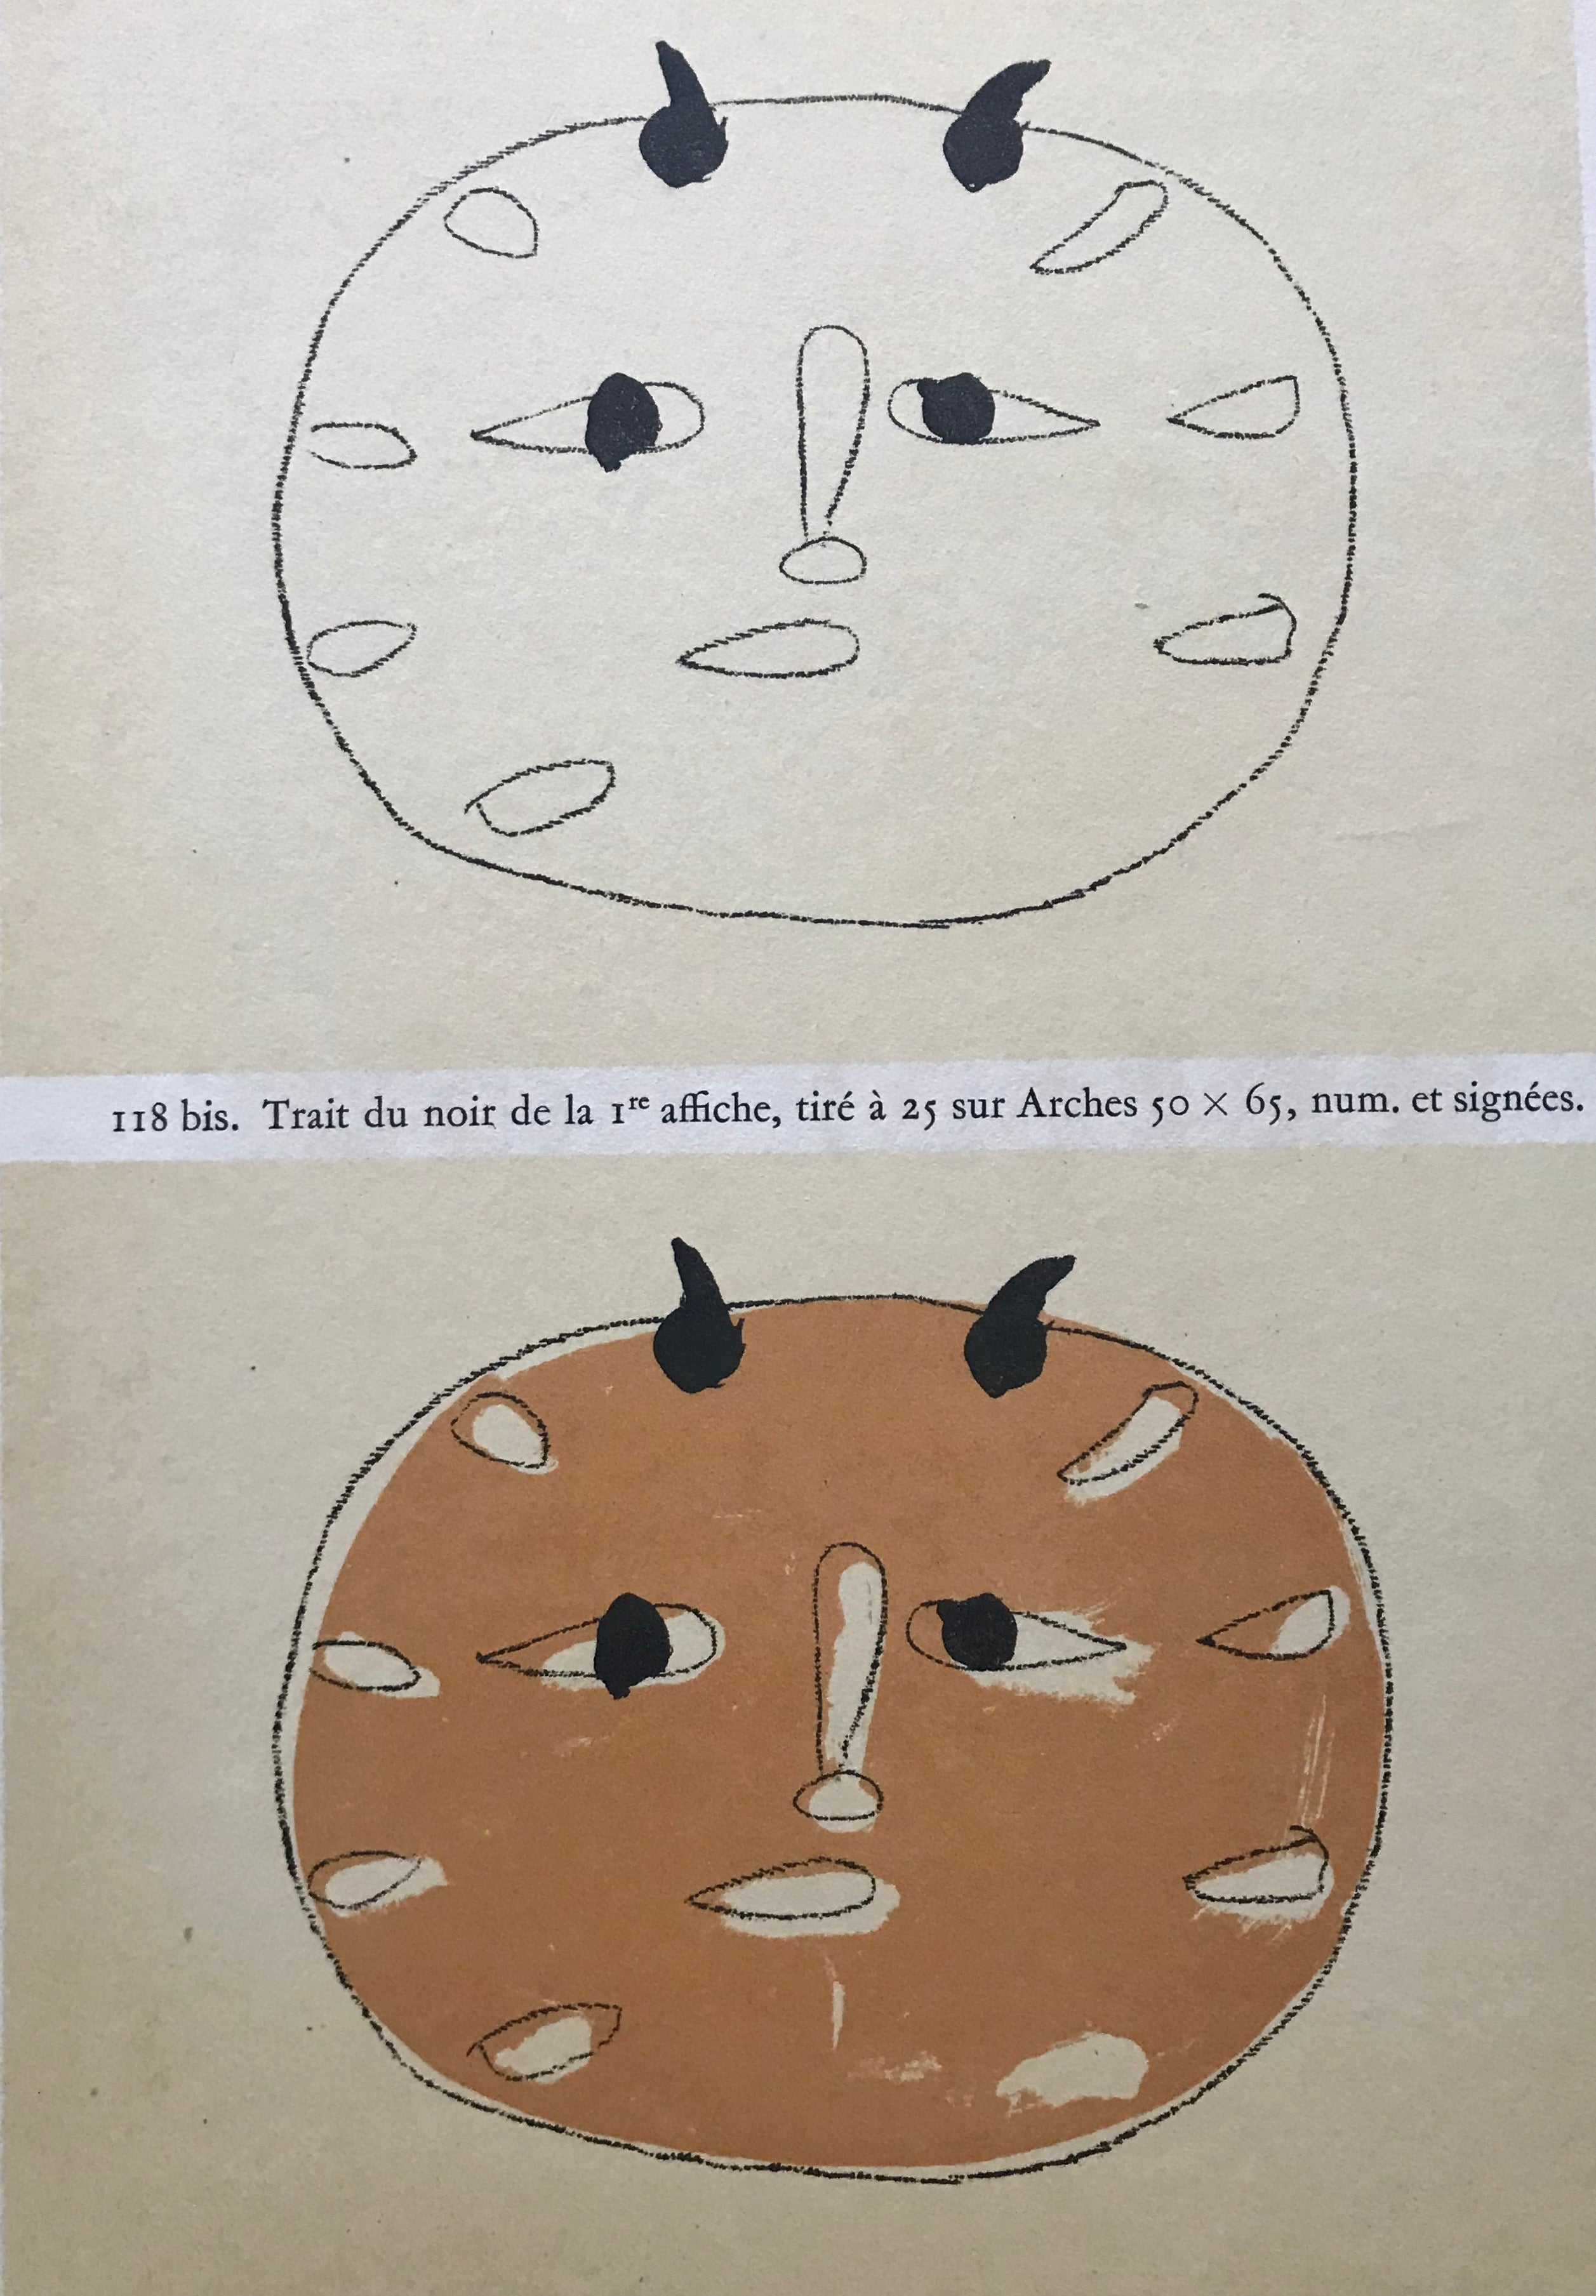 First Vallauris Poster by Pablo Picasso